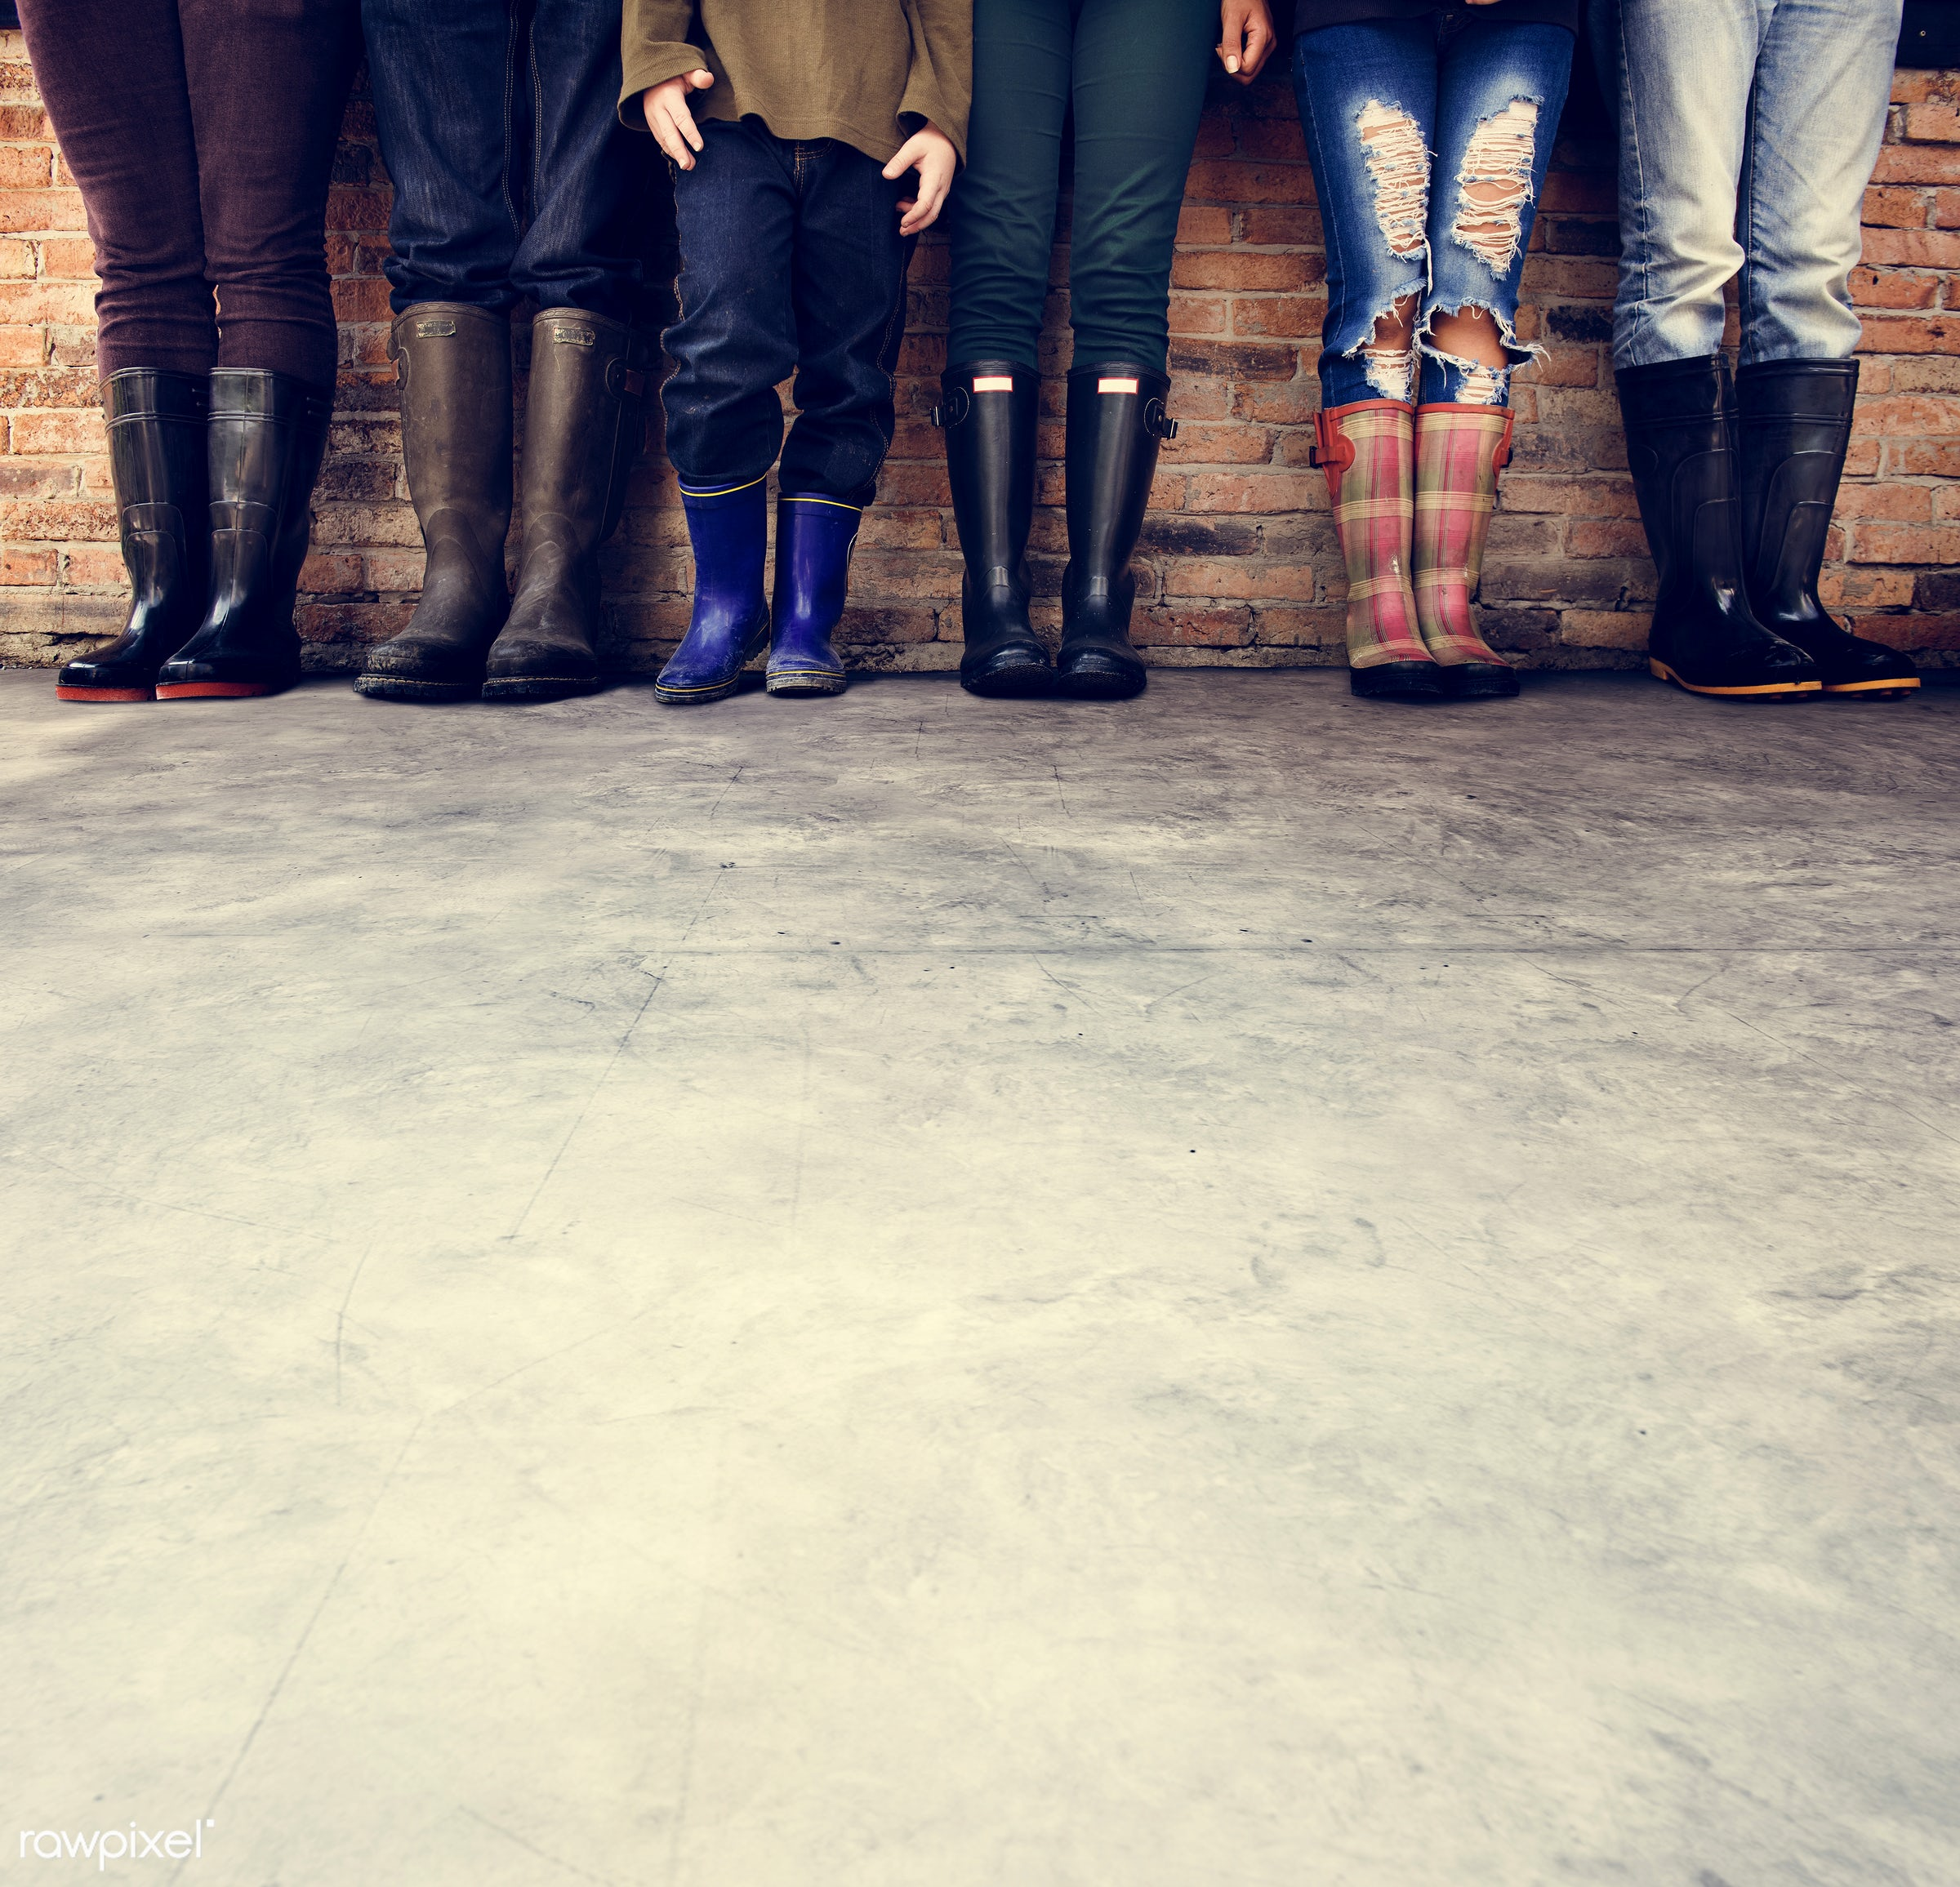 copy space, brick wall, brick, children, people, human leg, family, men, boots, concrete floor, blank, in a row,...